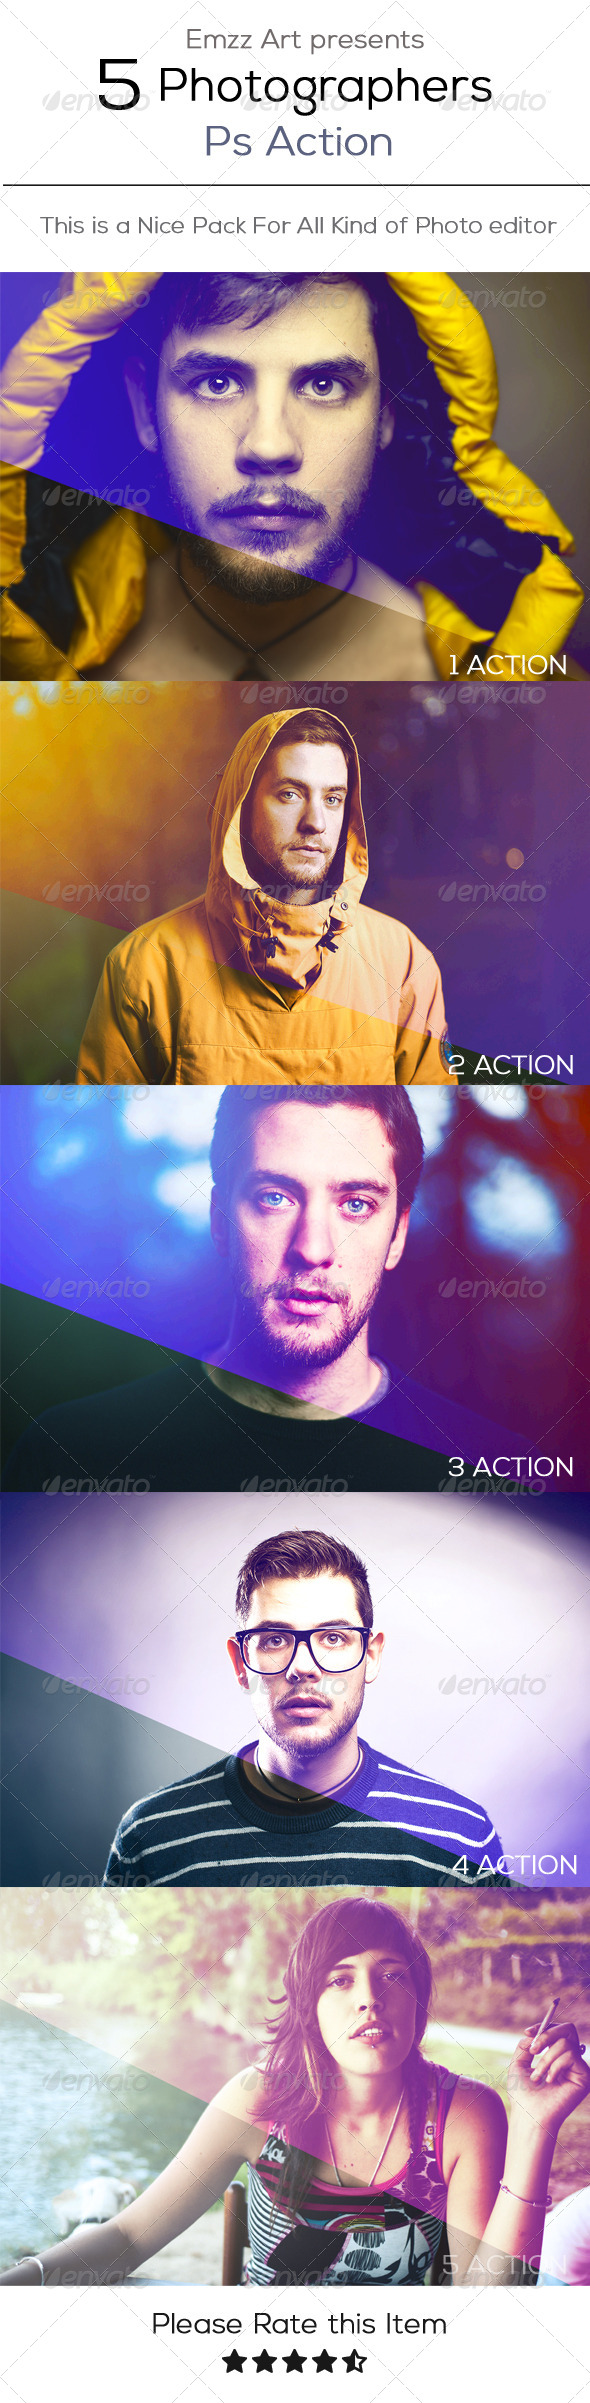 GraphicRiver 5 Ps Action 8022031